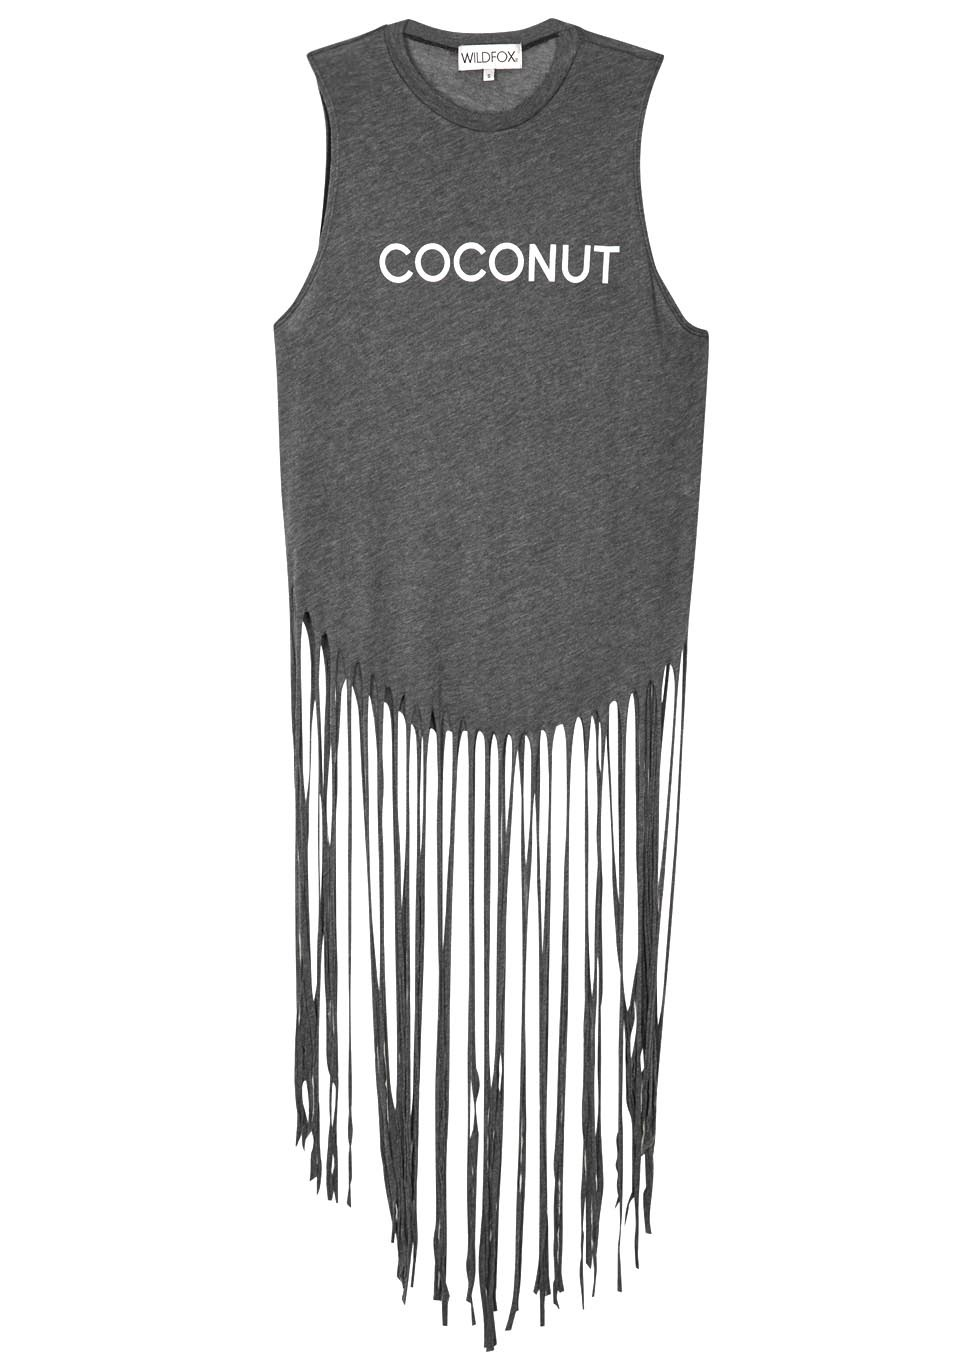 Gypsy Coconut Grey Fringed Cotton Tank - neckline: round neck; sleeve style: sleeveless; length: below the bottom; style: t-shirt; secondary colour: white; predominant colour: charcoal; occasions: casual, holiday; fibres: polyester/polyamide - mix; fit: straight cut; sleeve length: sleeveless; pattern type: fabric; texture group: jersey - stretchy/drapey; embellishment: fringing; pattern: graphic/slogan; season: s/s 2016; wardrobe: highlight; embellishment location: hem, hip